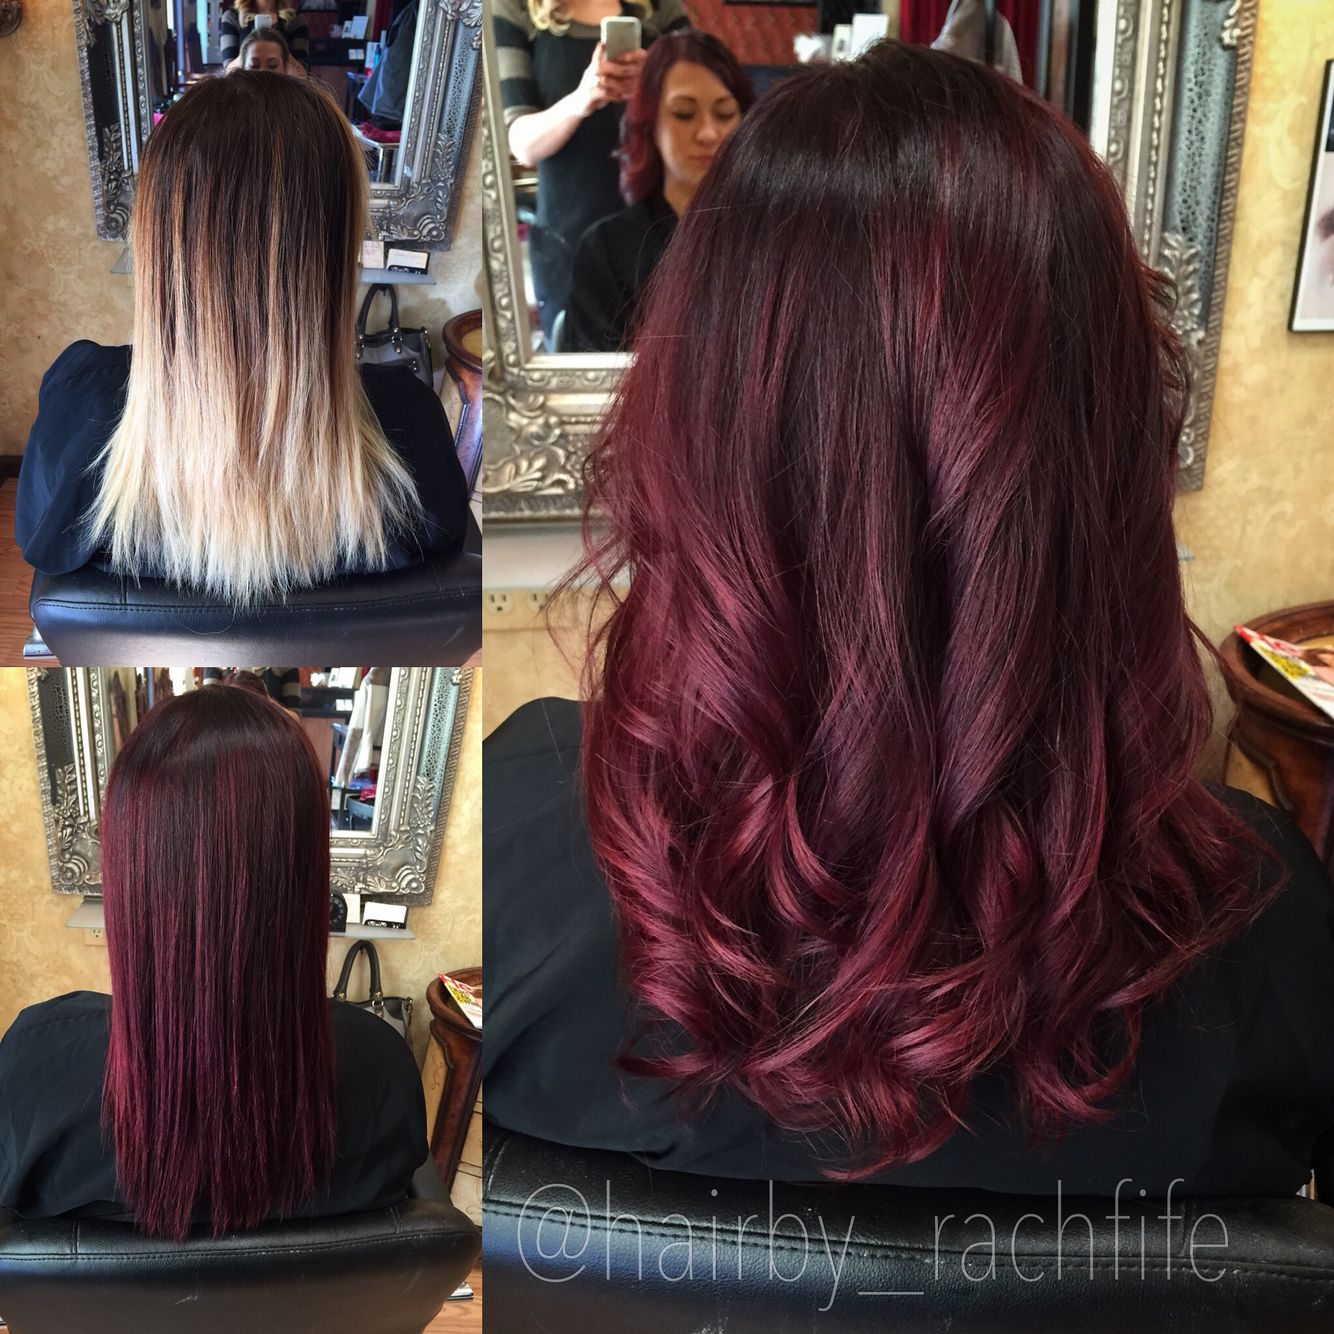 Amazing Before And After From Blonde To Red Custom Color Melt Created Using Redken Chromatics And Shades Eq Cream Love Wine Hair Burgundy Hair Red Hair Color